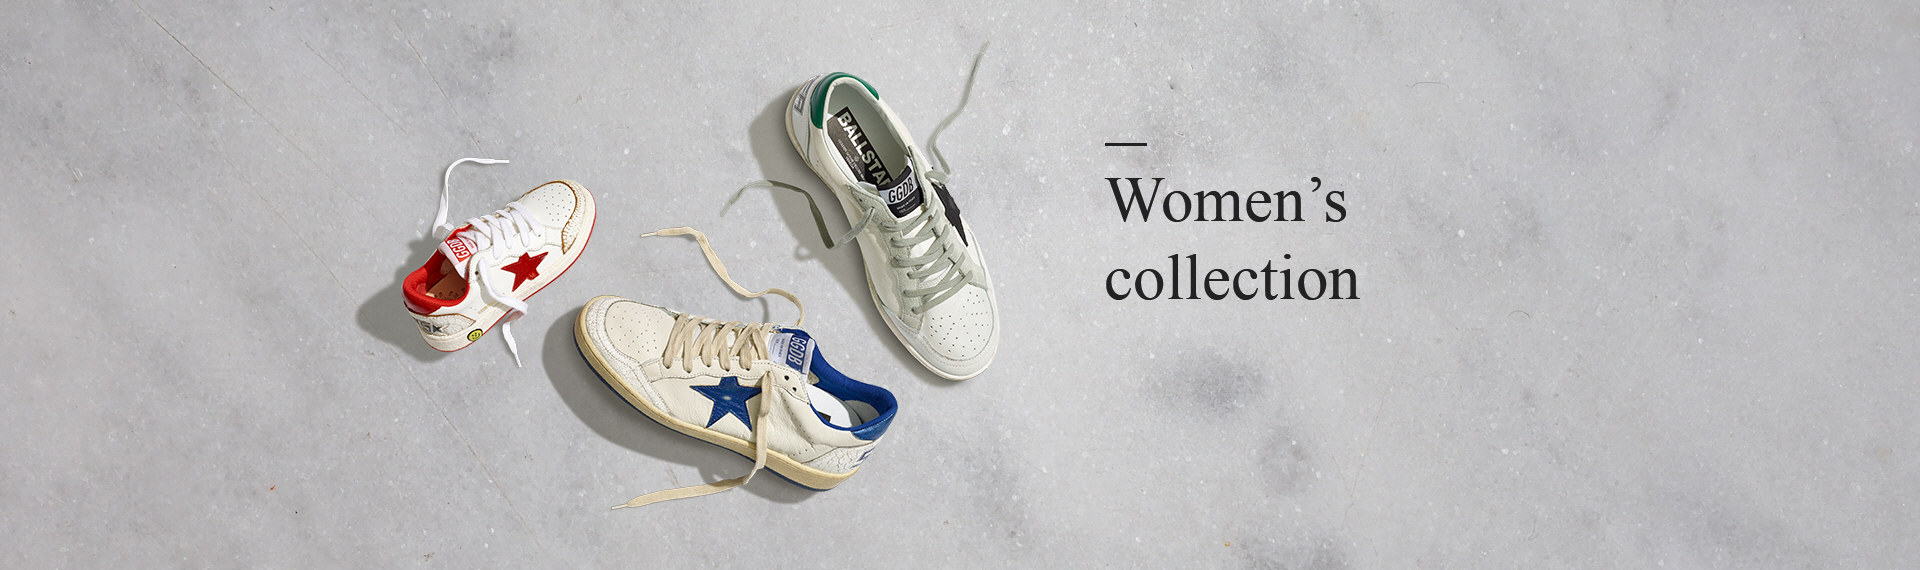 2018 F/W Women's collection